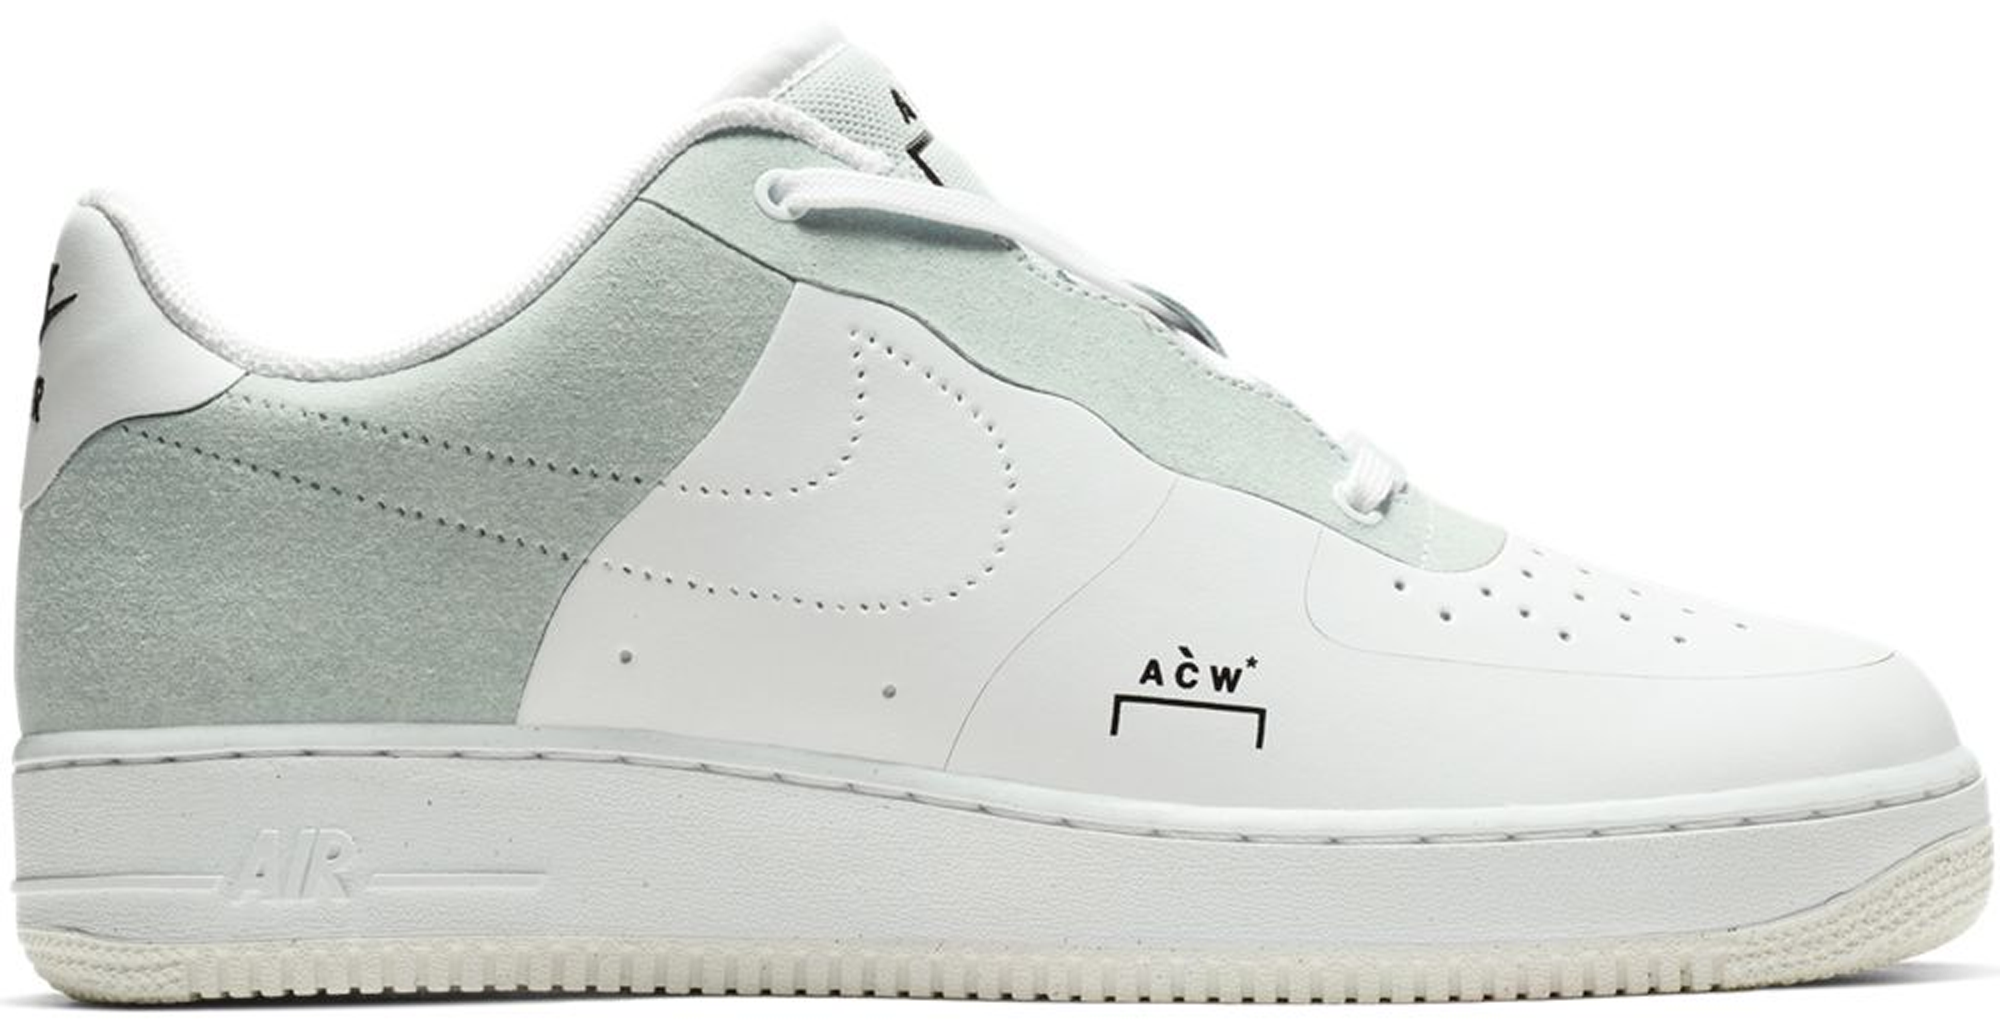 Nike air force 1 white Full White Air Force Low Cold Wall White Cold Wall White Amazoncom Air Force Low Cold Wall White Bq6924100